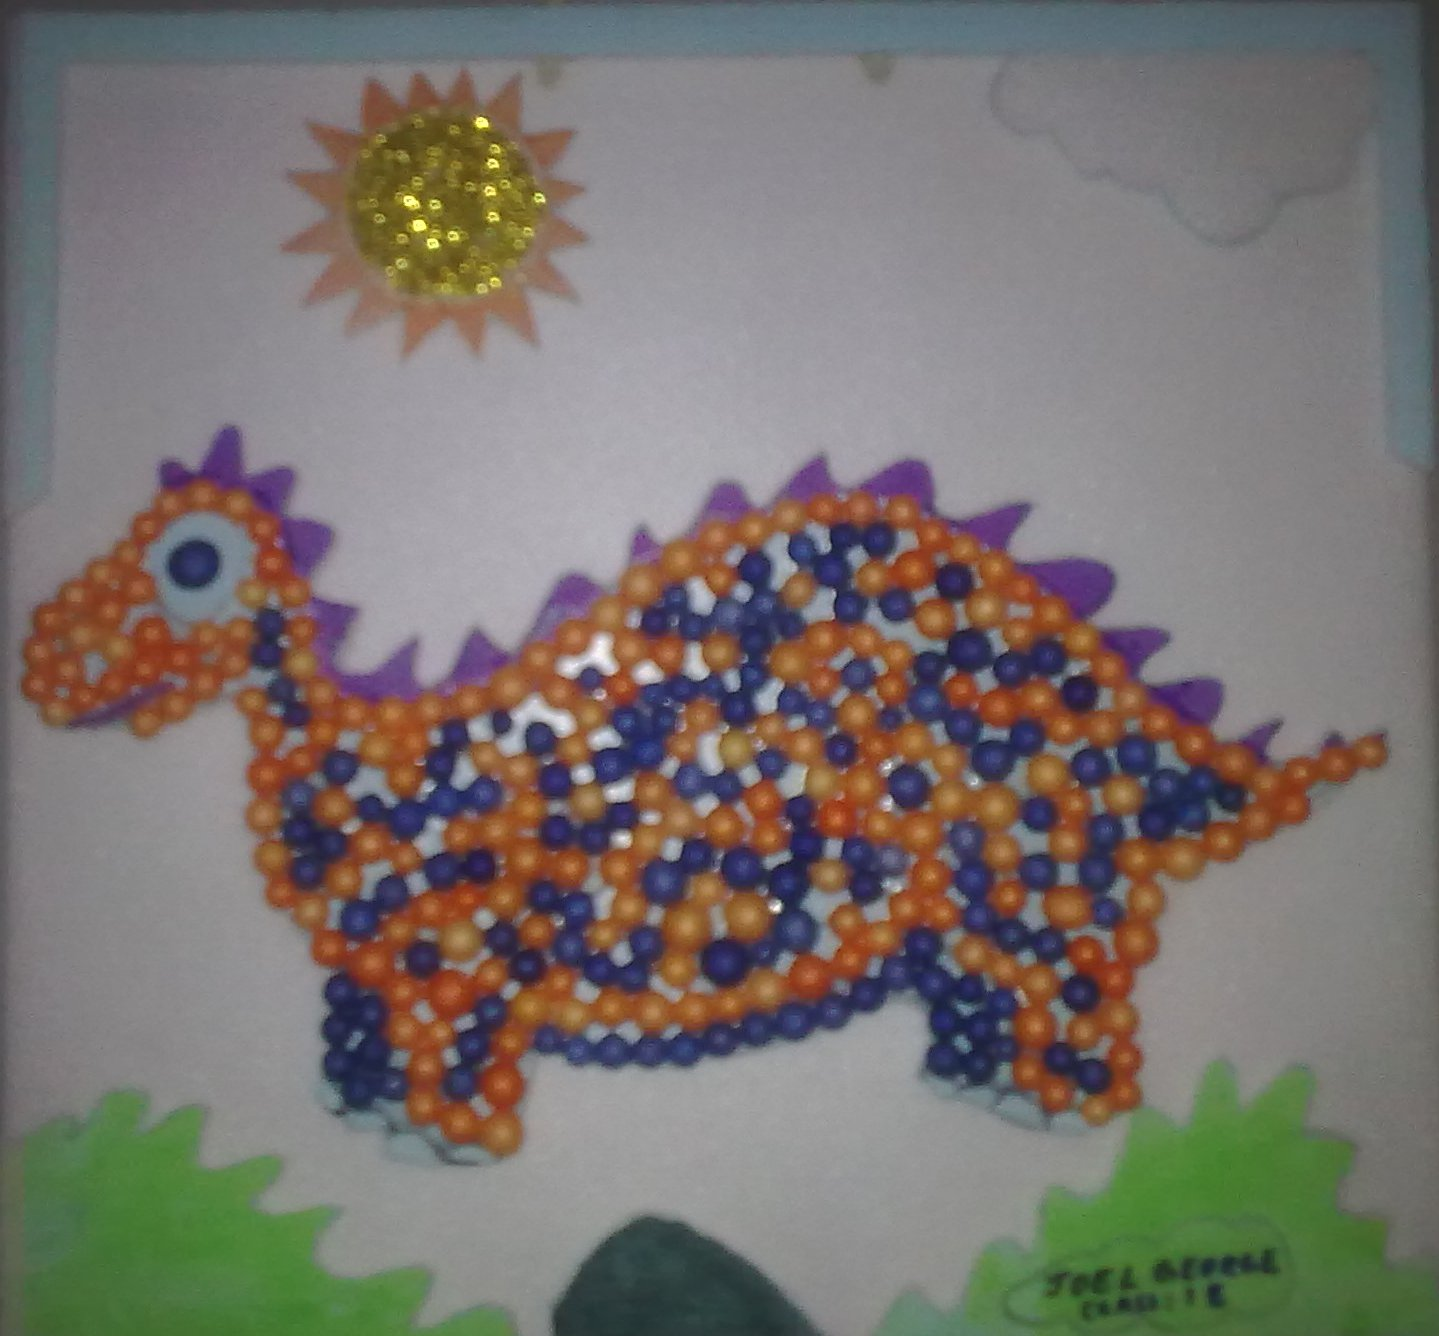 First Draw A Picture On Thermocol Cut It Out And Paste Aother Board Then Decorate With Balls Glitter By Pasting The Design